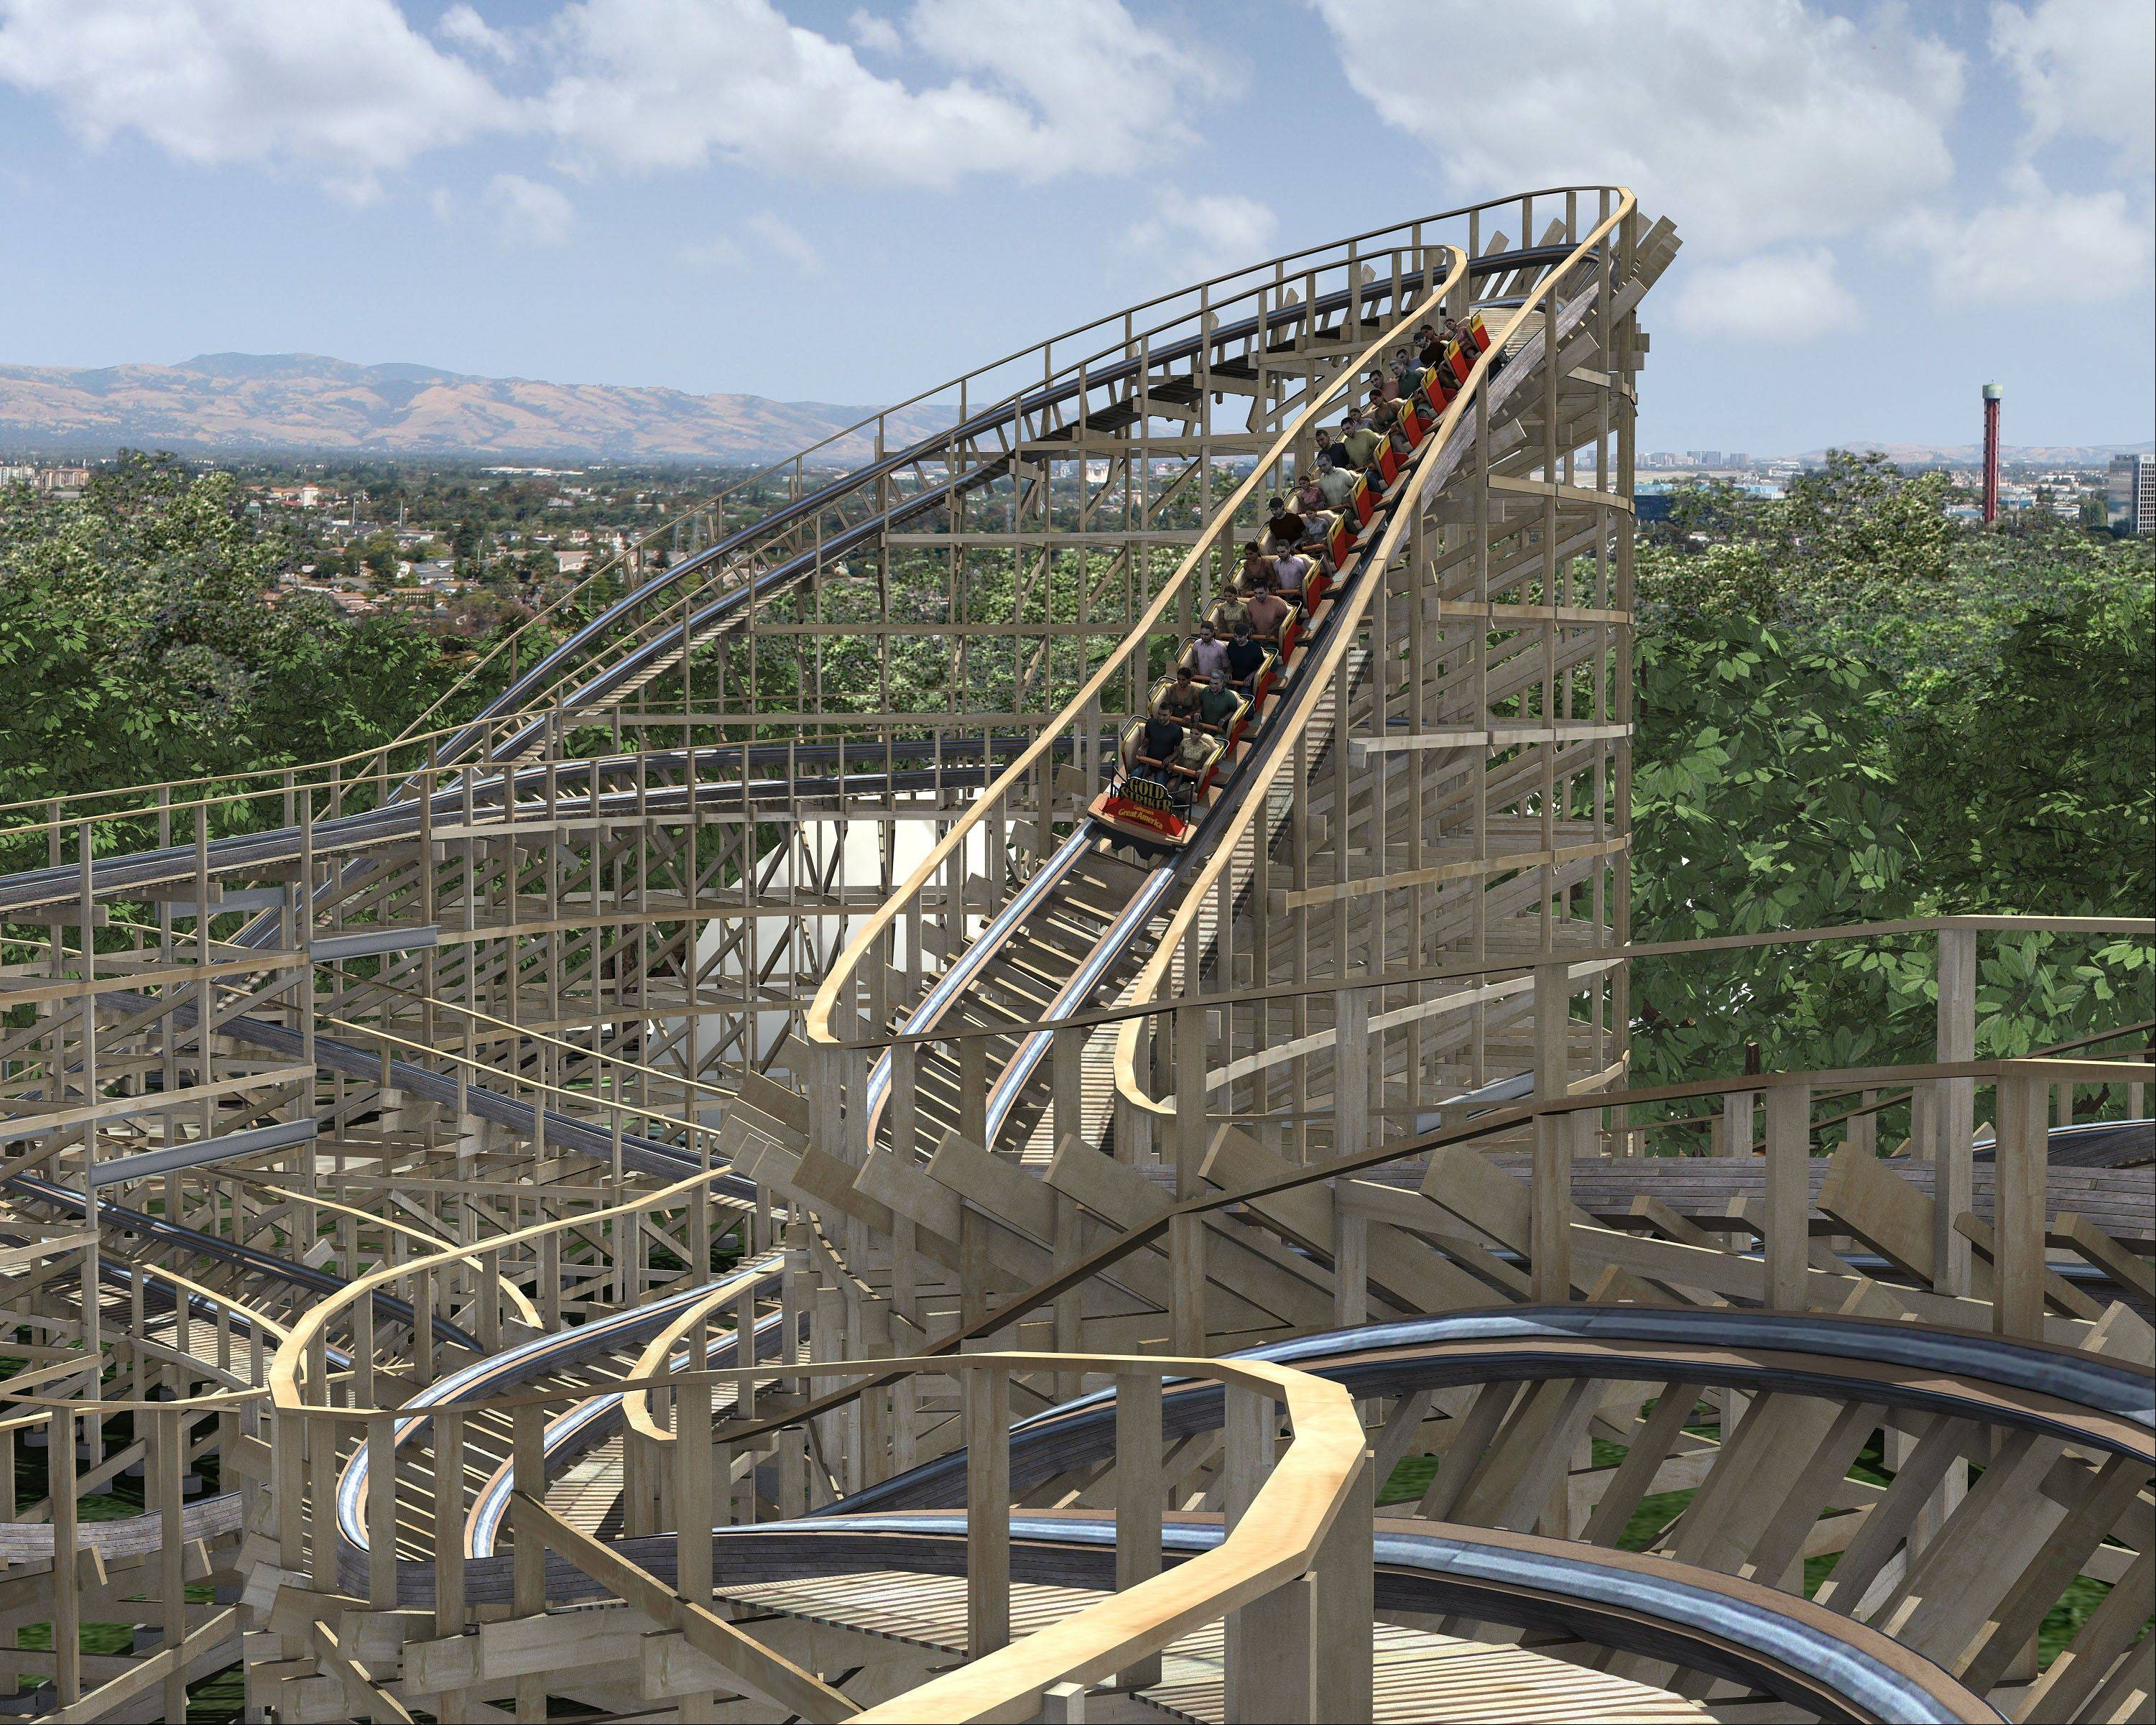 The new roller coaster Gold Striker will open this summer at the Great America in Santa Clara, Calif. The wooden coaster will be 108 feet tall and will go more than 50 mph.